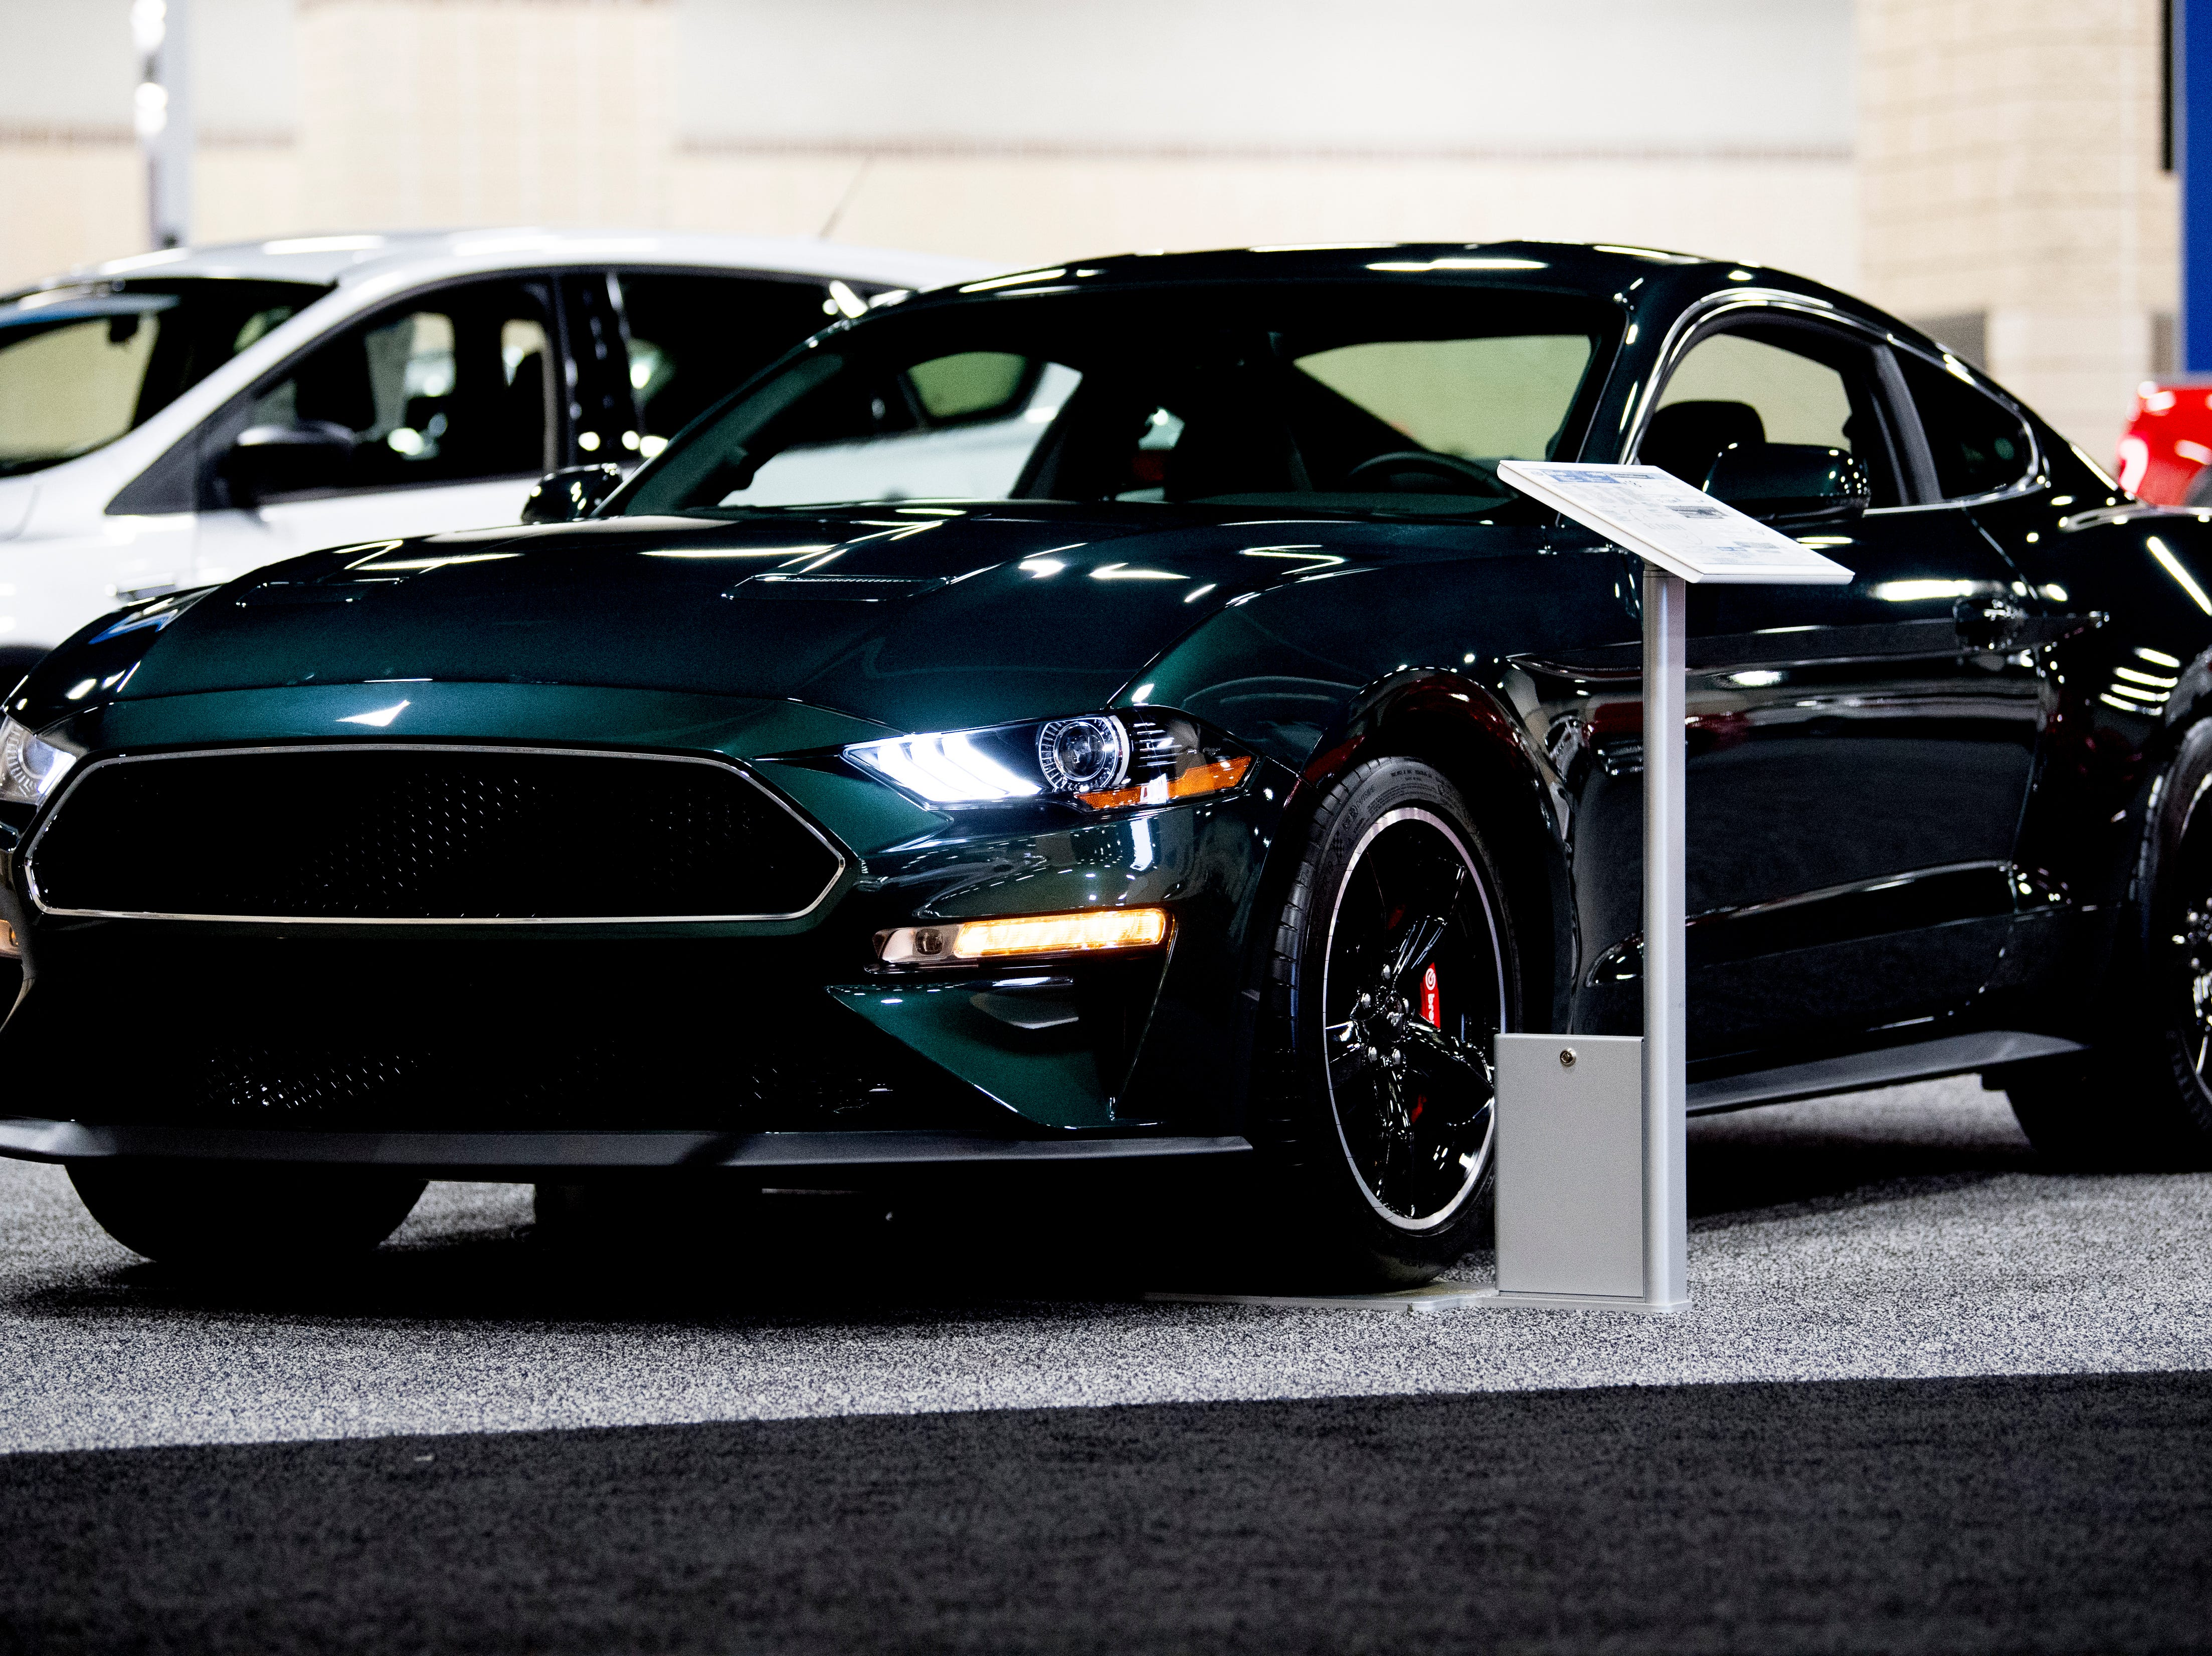 A 2019 Ford Mustang BULLITT seen at the Knox News Auto Show preview party in the Knoxville Convention Center in Knoxville, Tennessee on Thursday, February 21, 2019.